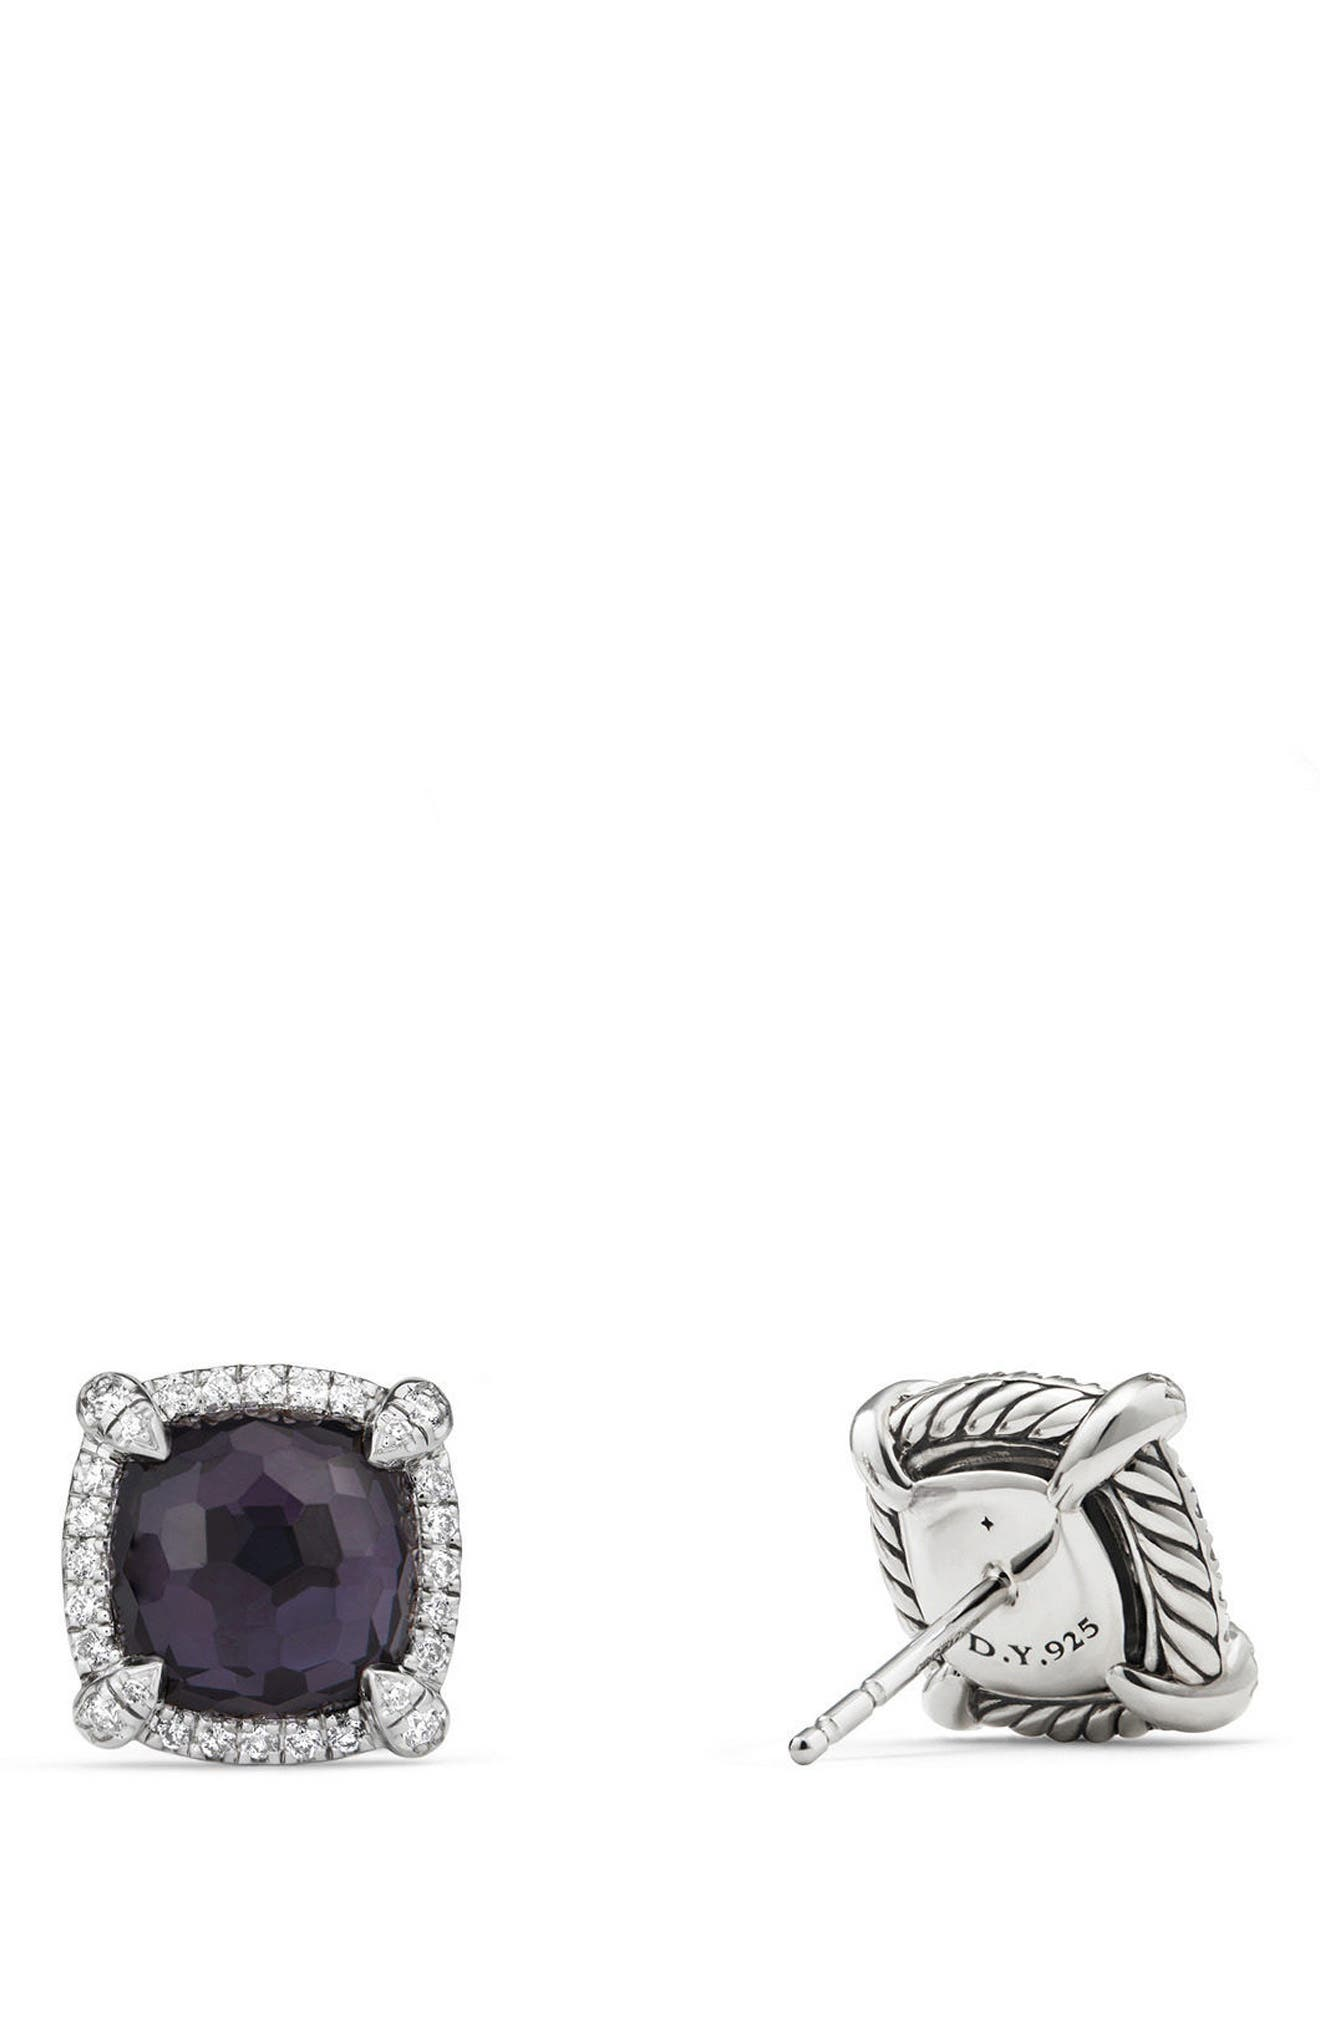 Alternate Image 2  - David Yurman Chatelaine Pavé Bezel Earring with Black Orchid and Diamonds, 9mm